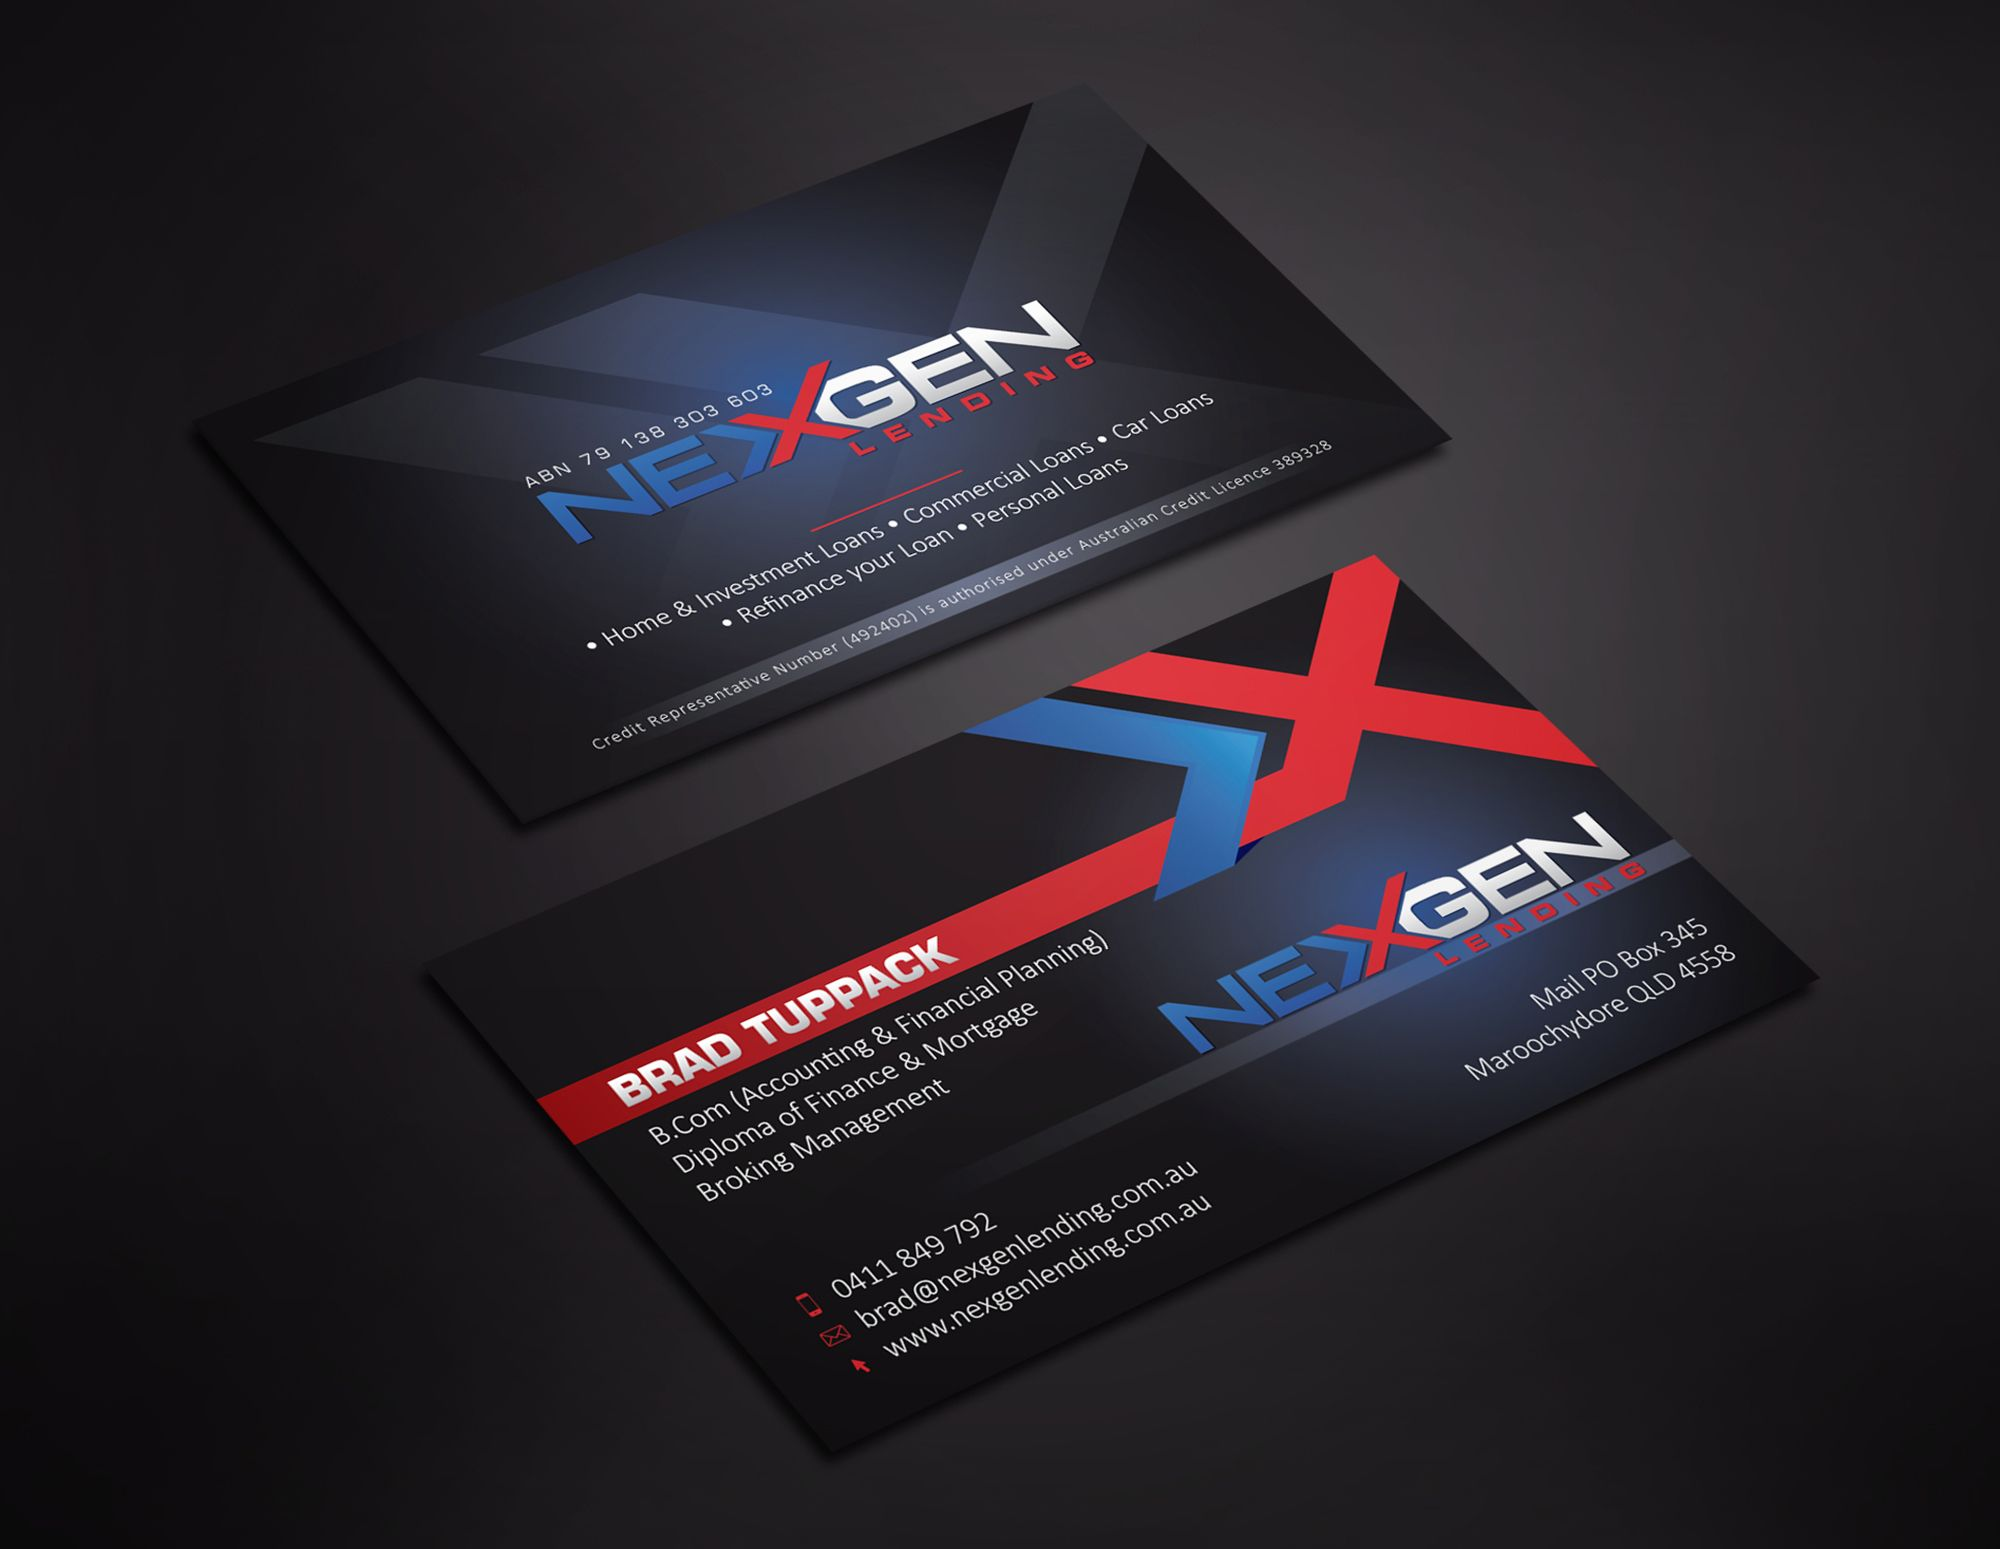 Imamhasan03 I Will Provide Professional Business Card Design For 5 On Fiverr Com Business Card Design Professional Business Cards Professional Business Card Design